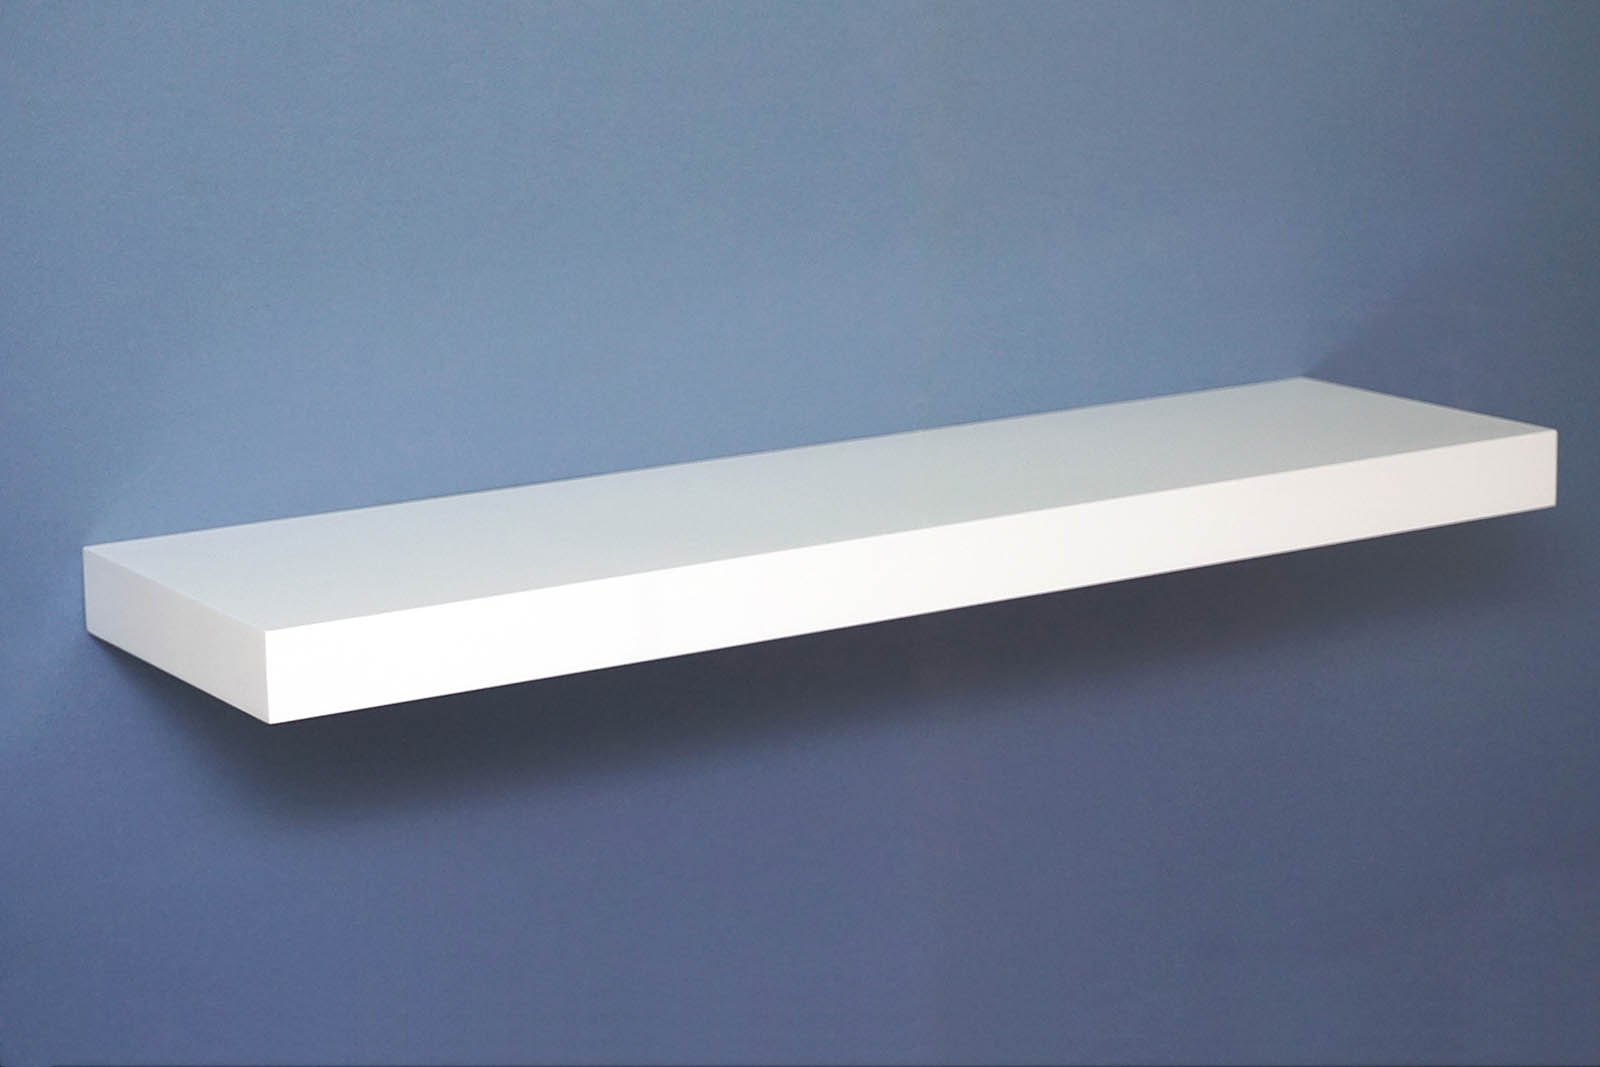 White Floating Shelves Gloss White Floating Shelf 900x250x50mm - Mastershelf